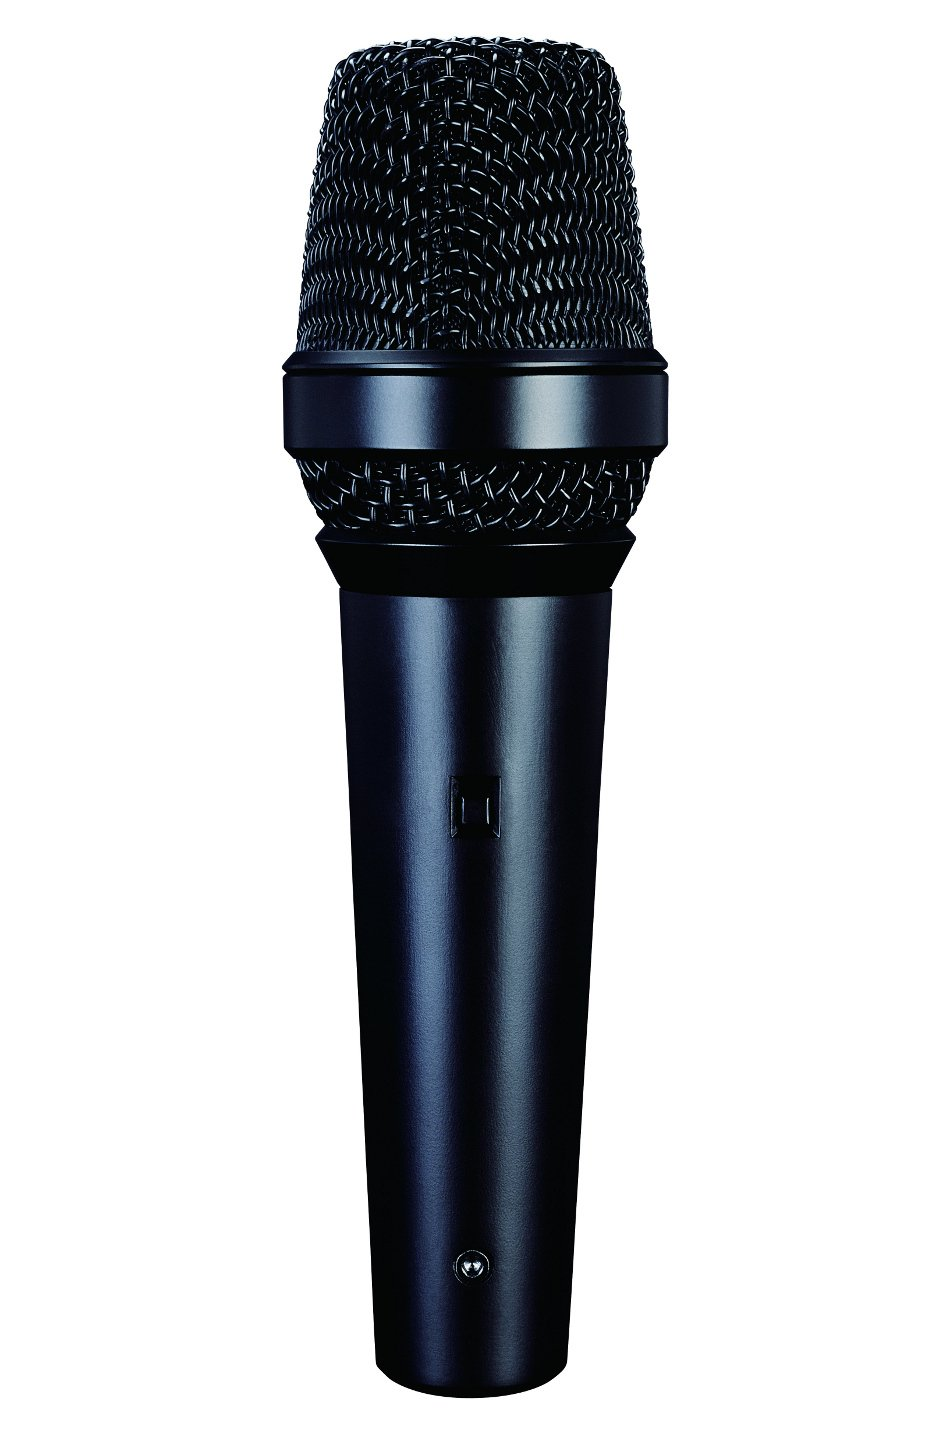 Handheld Condenser Vocal Microphone w/ On-Off Switch